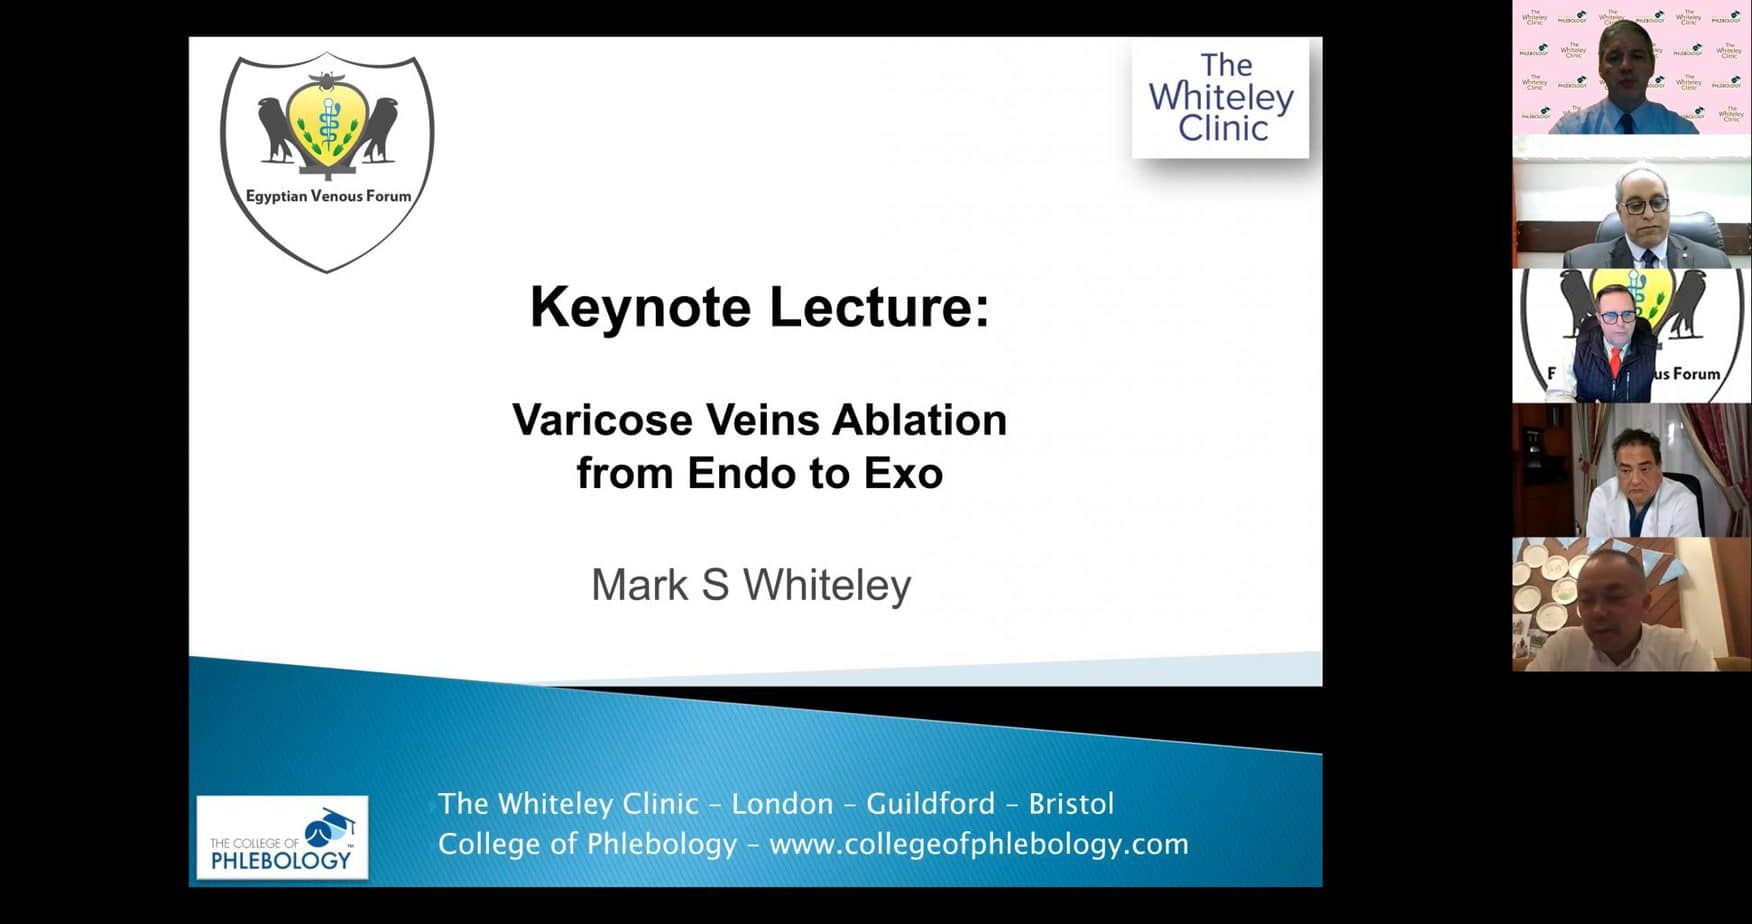 Prof Mark Whiteley giving Keynote Lecture on Varicose Veins Ablation – From Endo to Exo